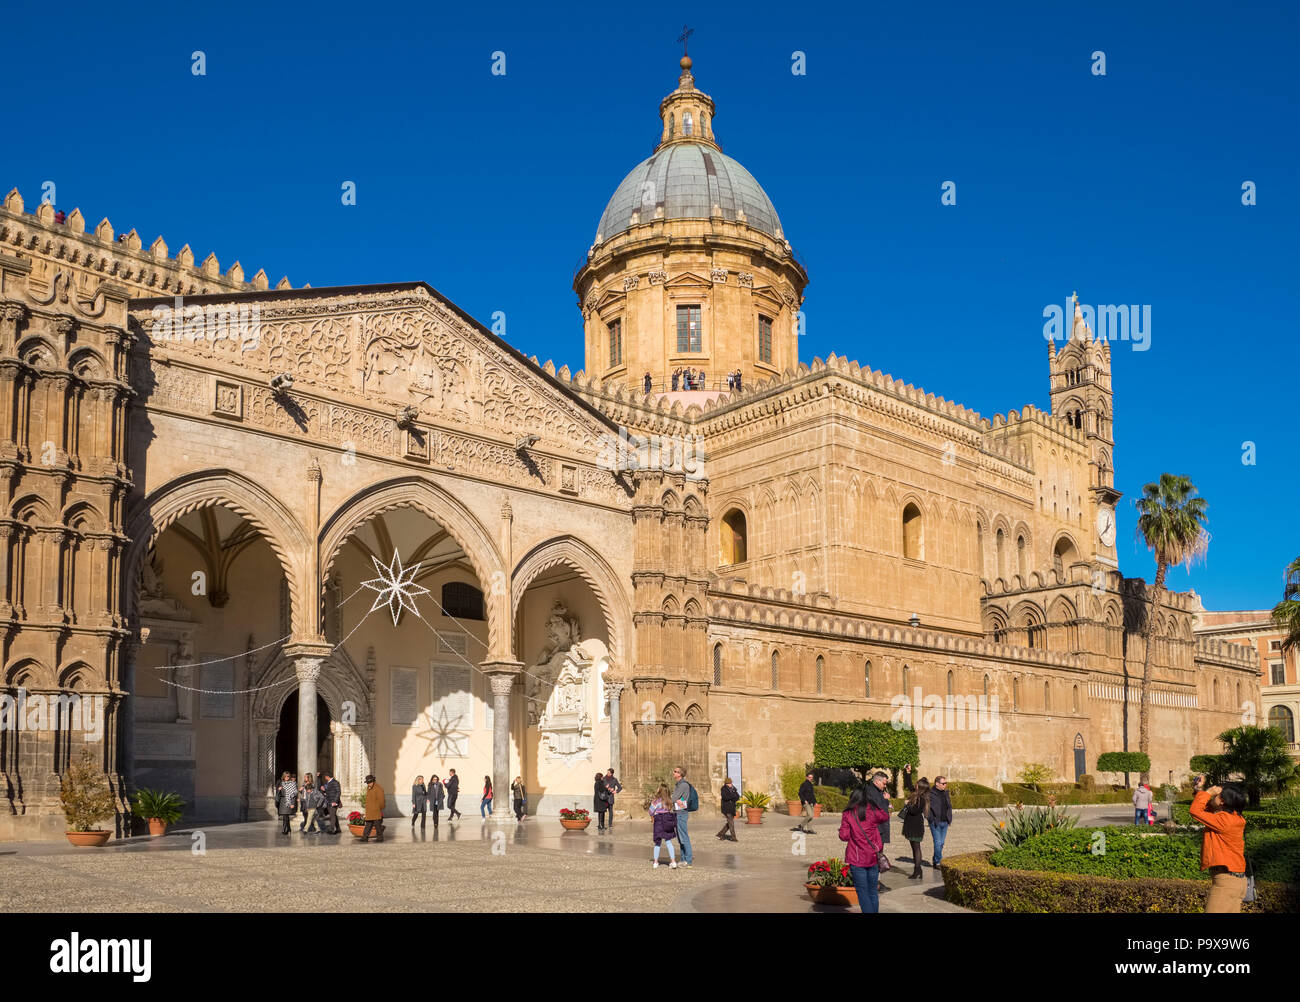 Exterior of Palermo Cathedral, of the Assumption of the Virgin Mary, Palermo, Sicily, Italy, Europe - Stock Image